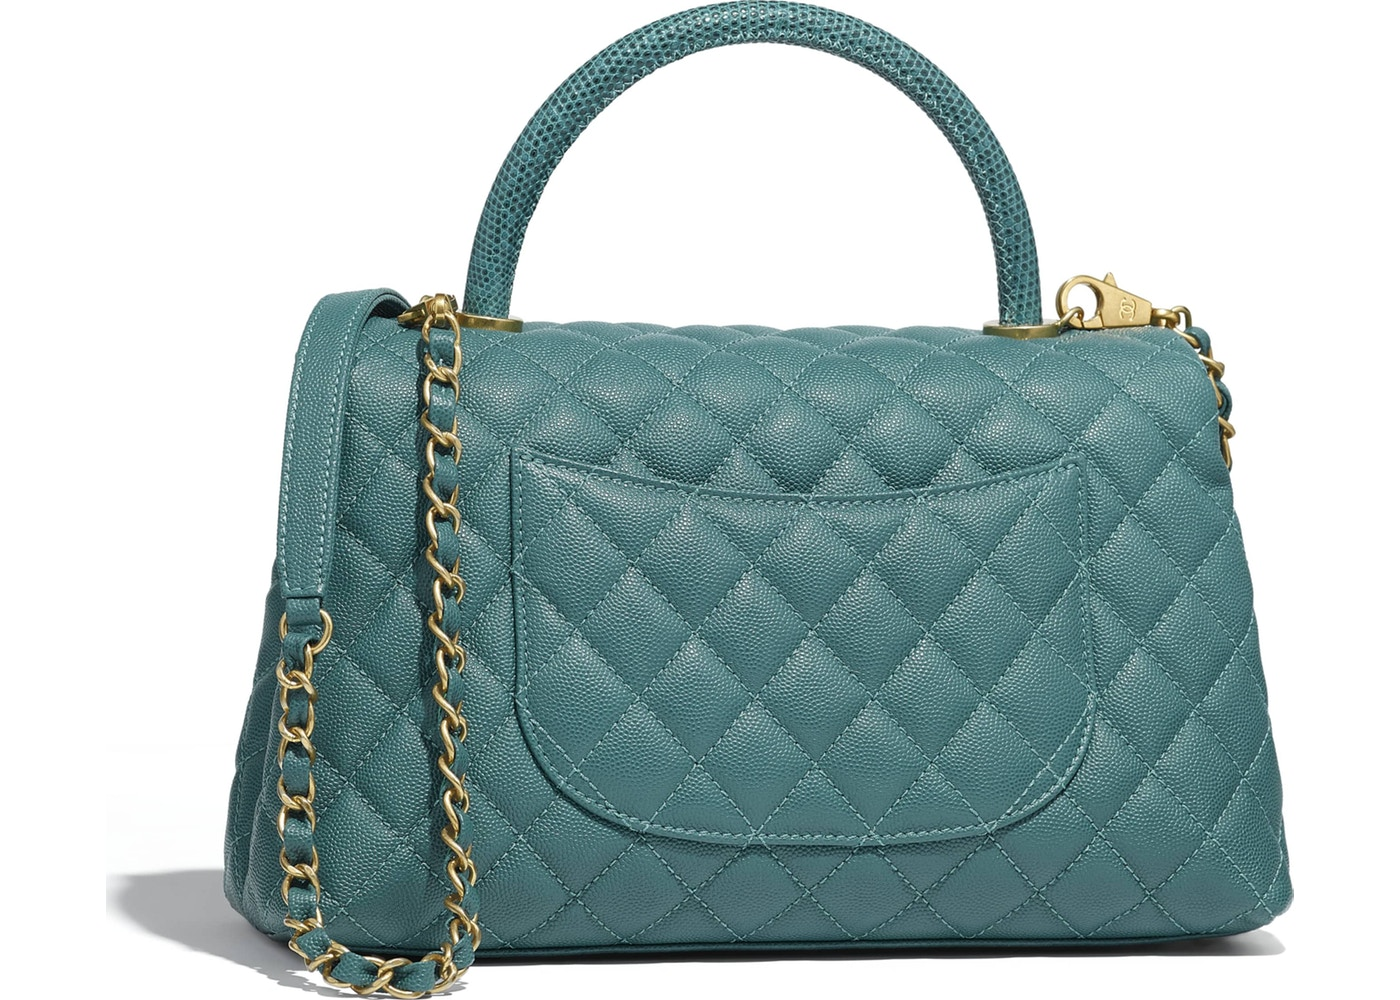 5304e204510b Chanel Flap Bag with Top Handle Green